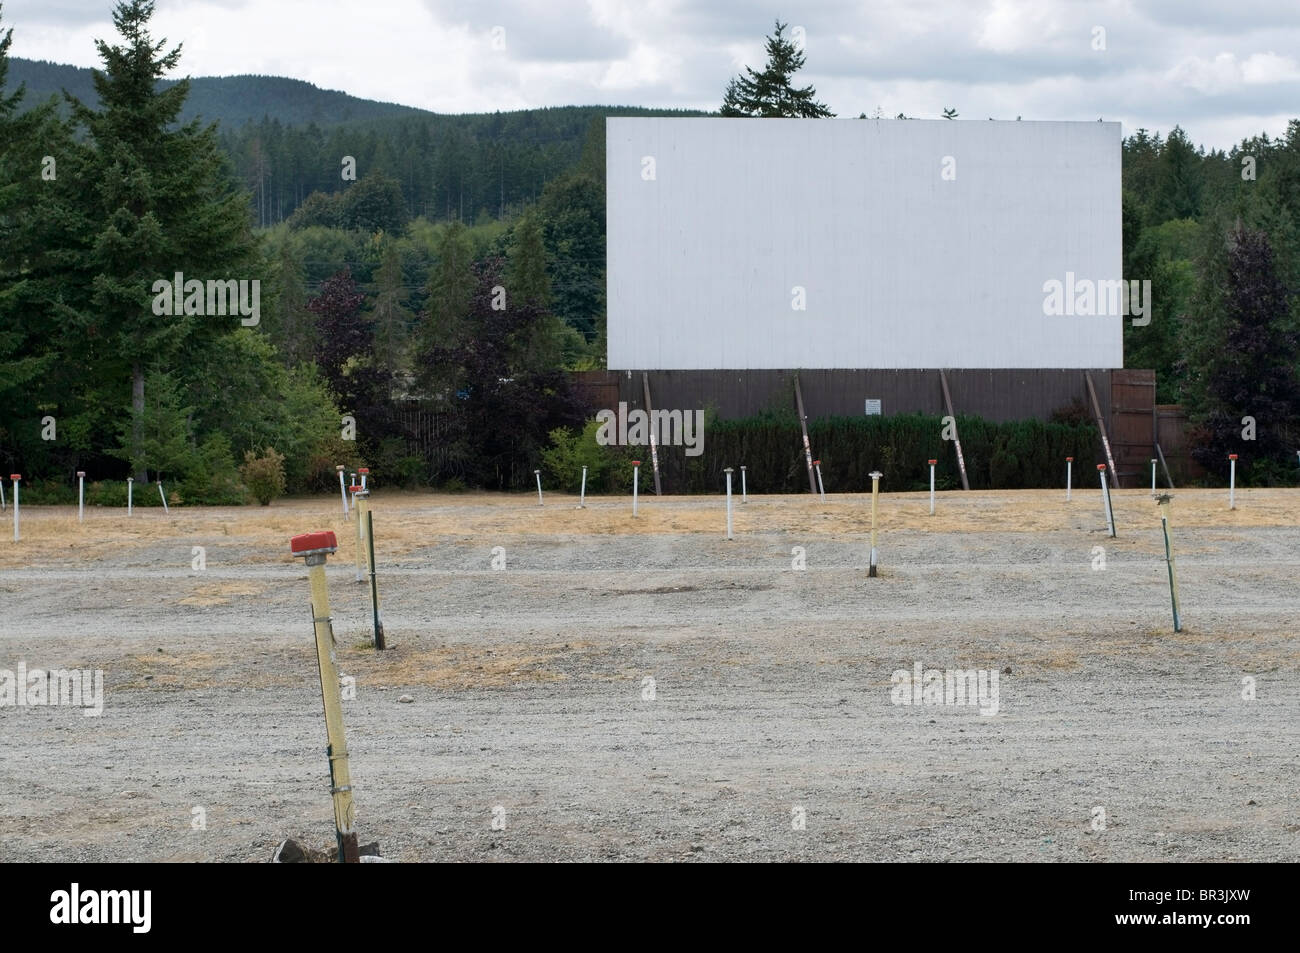 Old Fashioned Outdoor Drive In Movie Theater In Shelton Washington Stock Photo Alamy